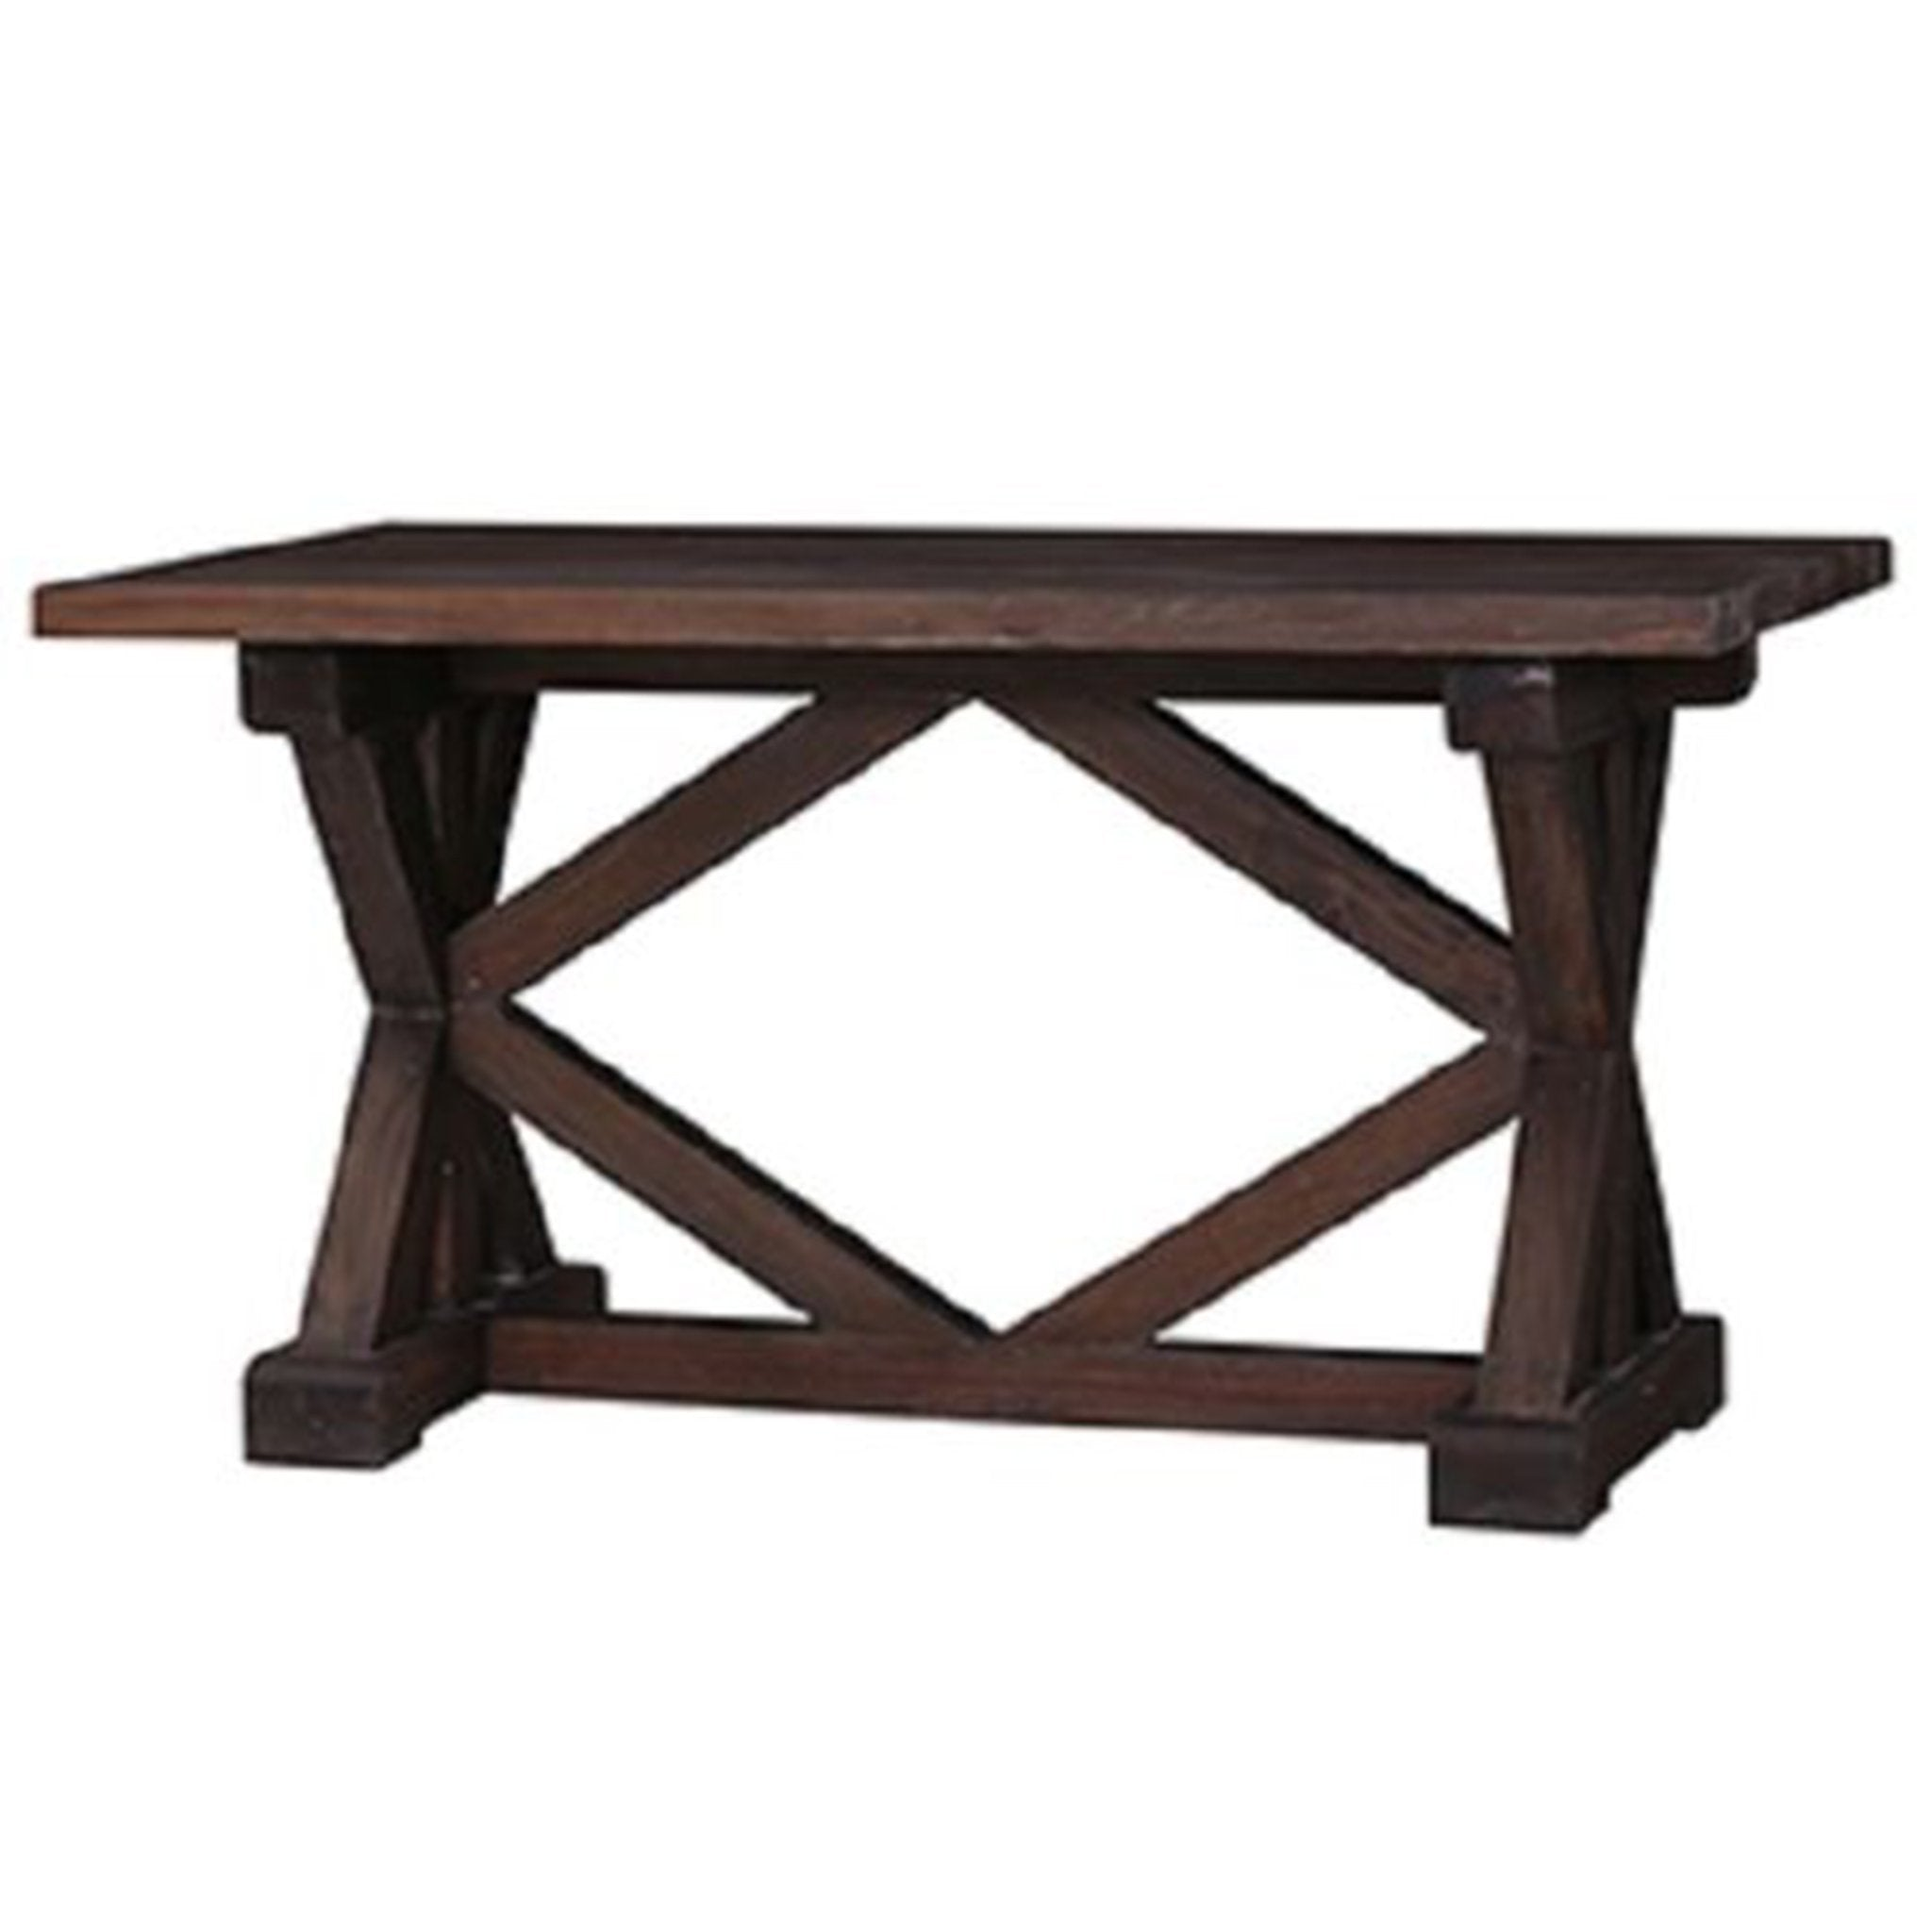 Riverwalk Counter Height Dining Table Cocoa Finish Rustic - Furniture on Main